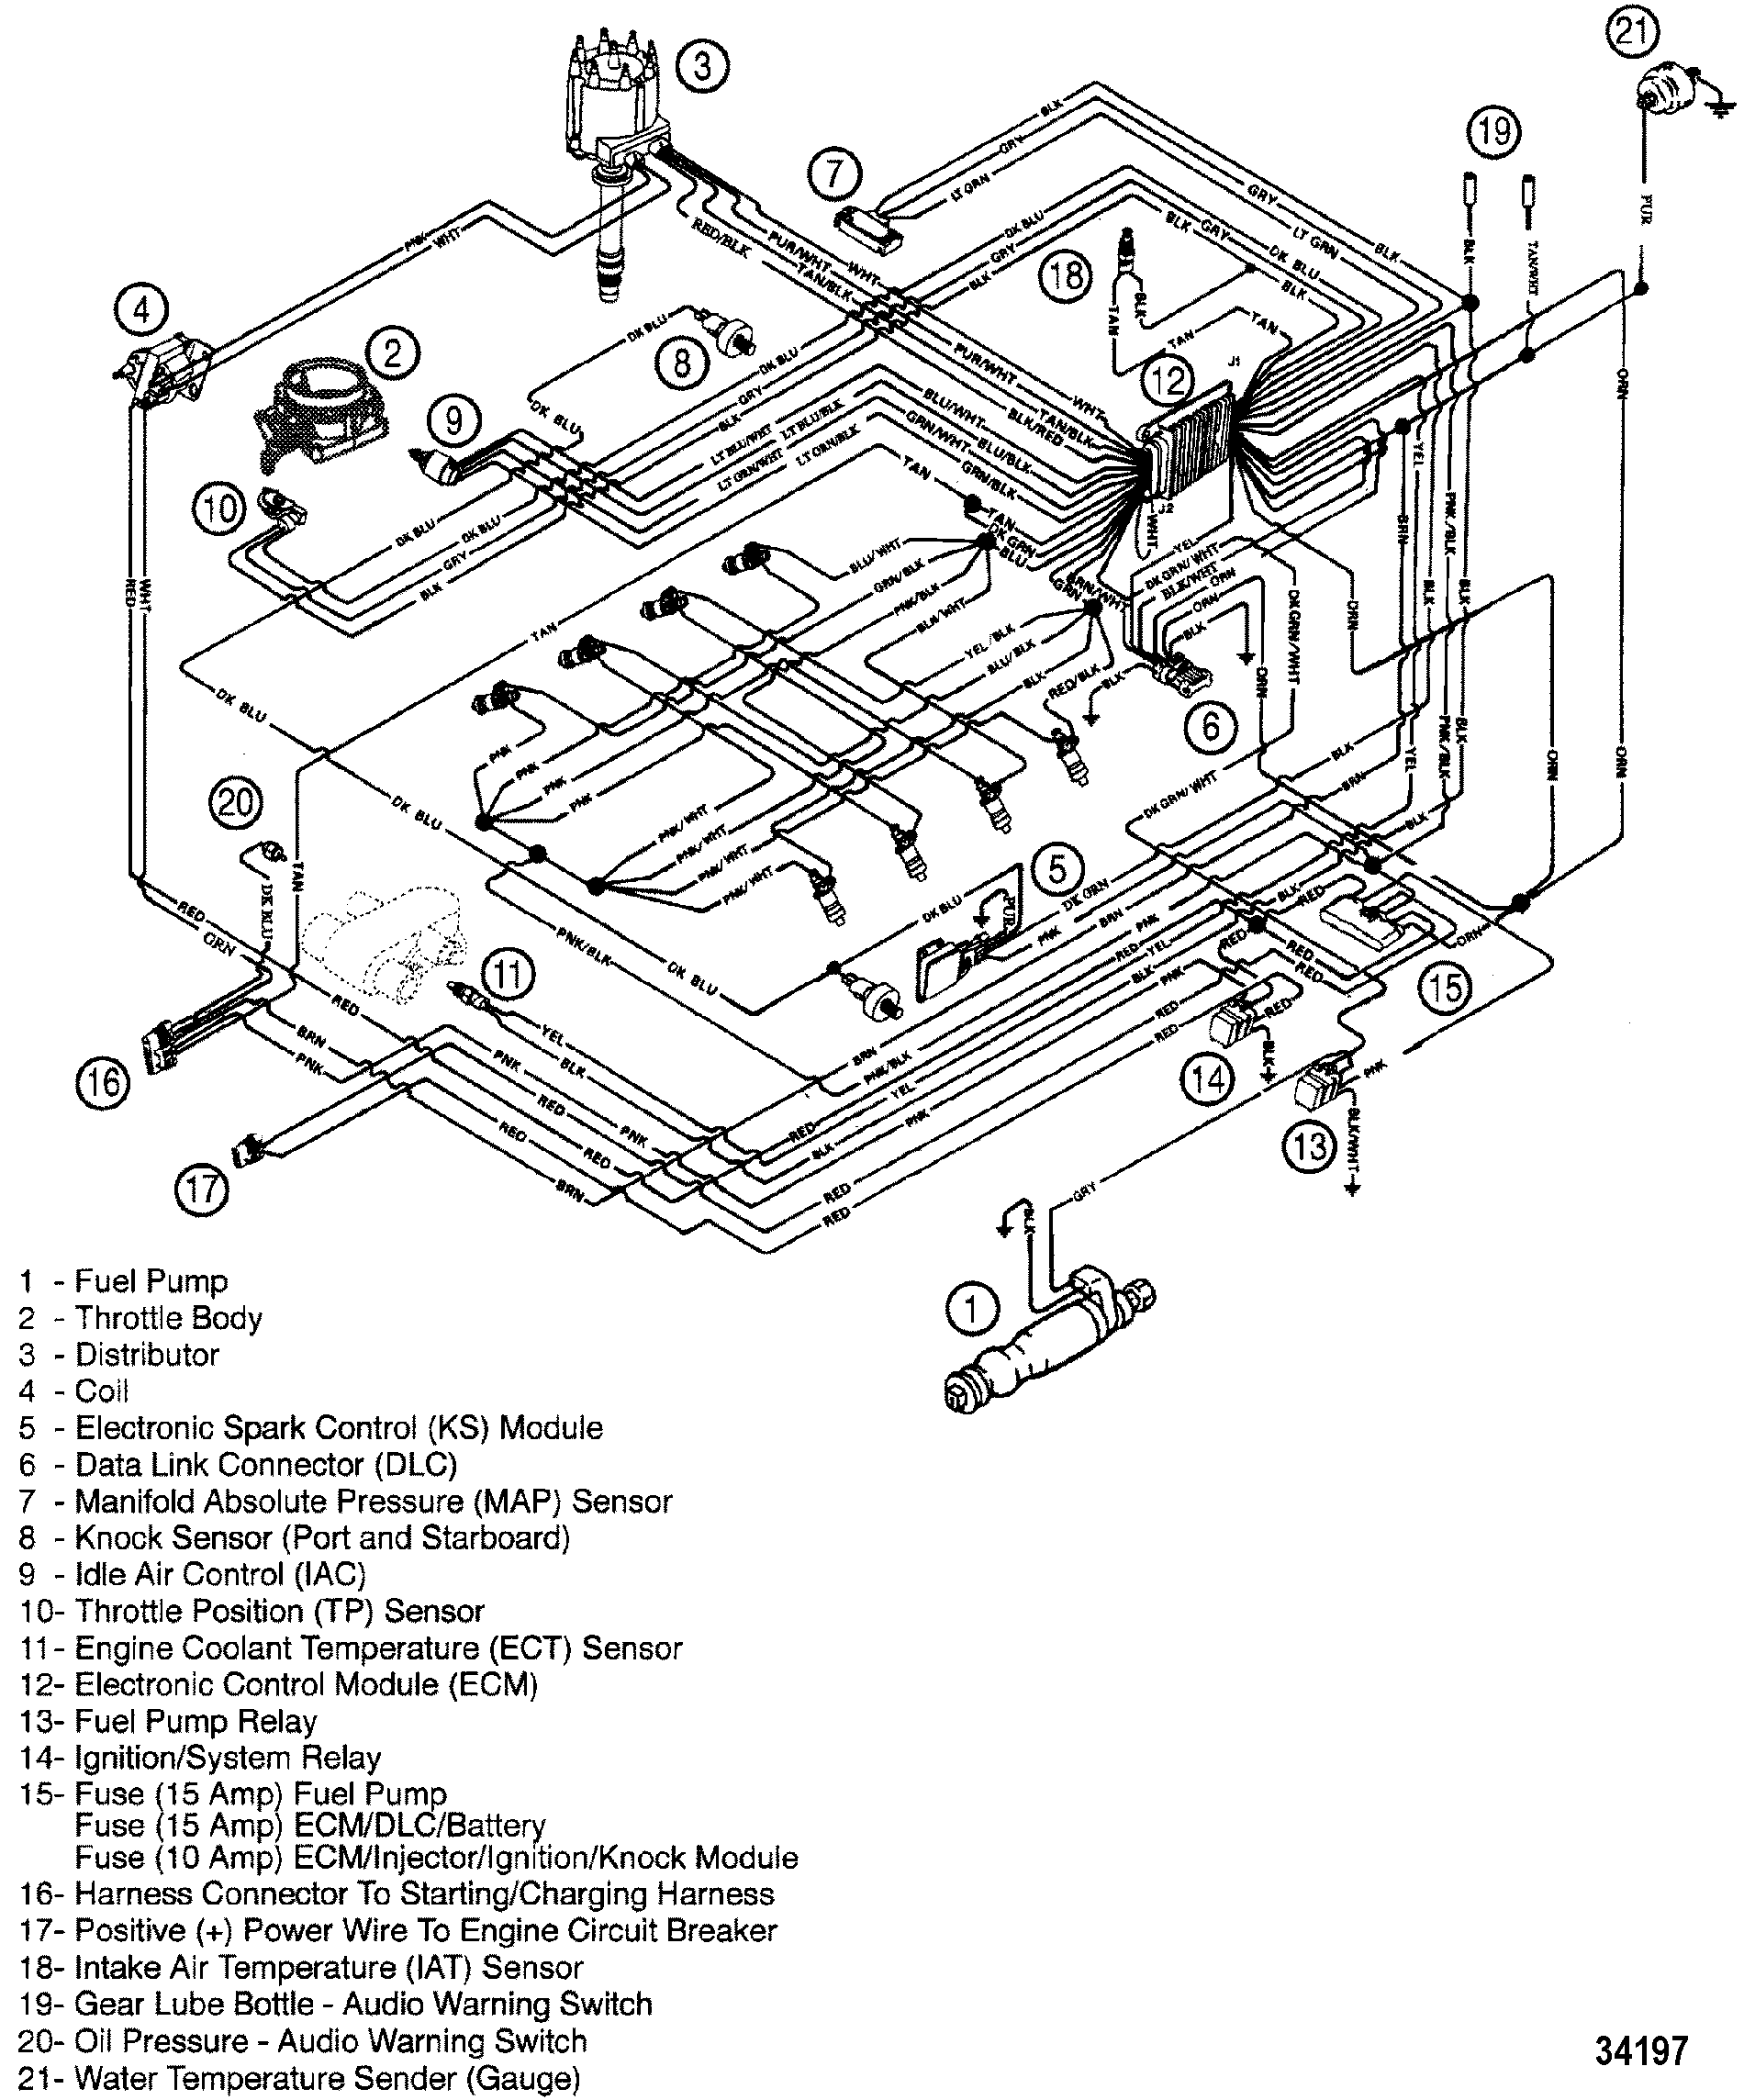 mercruiser wiring harness diagram wiring solutions mercruiser wiring harness 9 pin diagram wiring harness efi for mercruiser 7 4l mpi bravo l29 gen vi